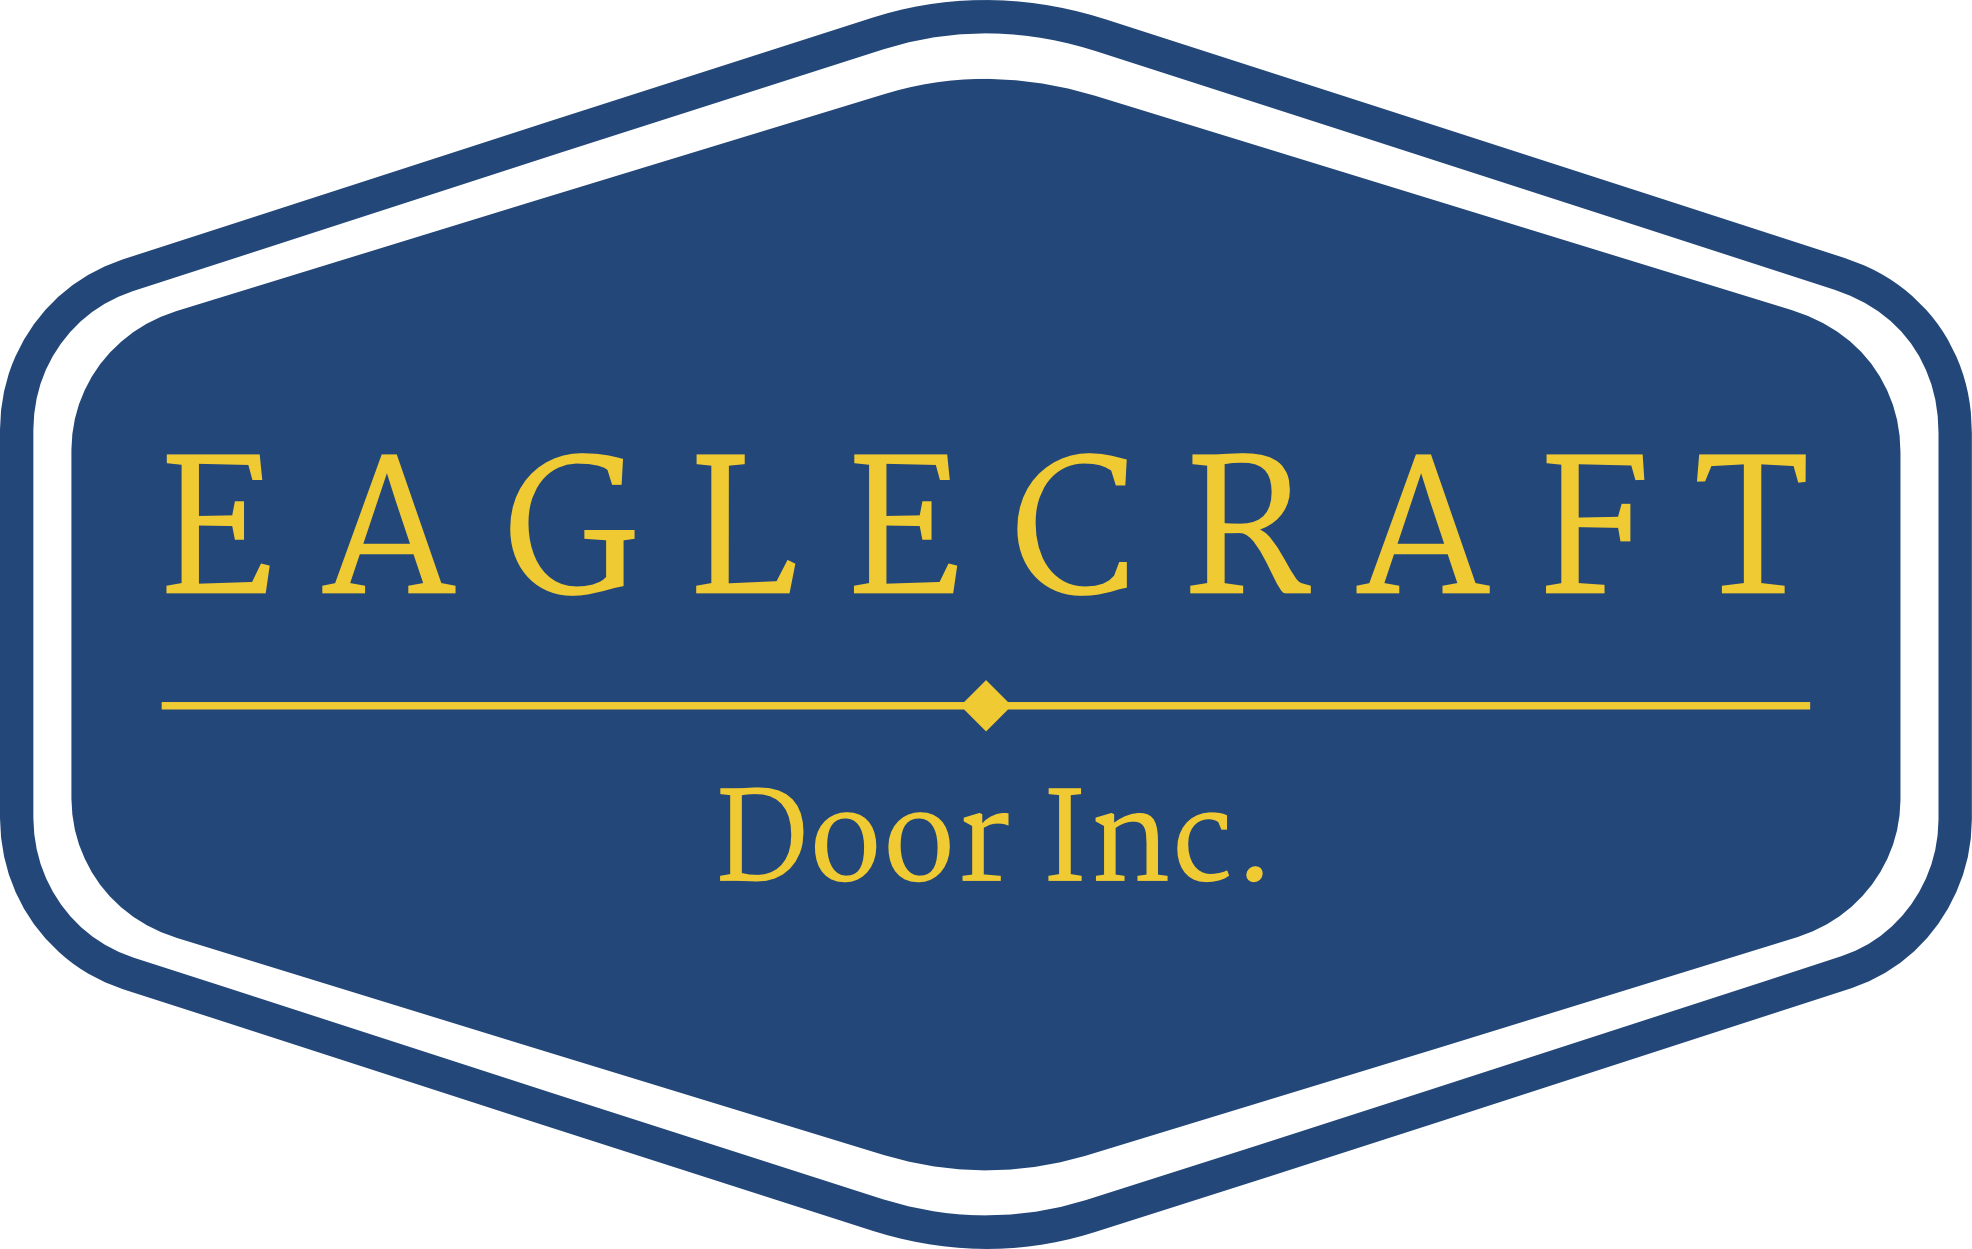 Eaglecraft Door